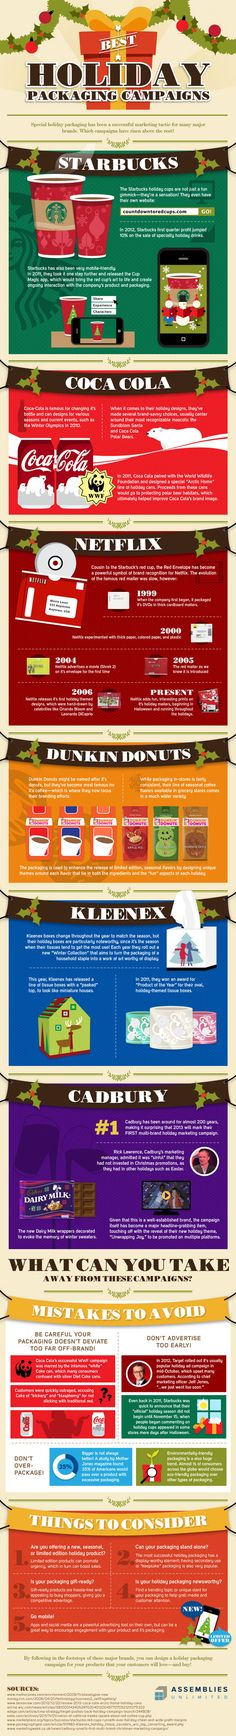 Holiday Packaging Campaigns - An Infographic by Assemblies Unlimited. Some #holiday #packaging #branding news. PD